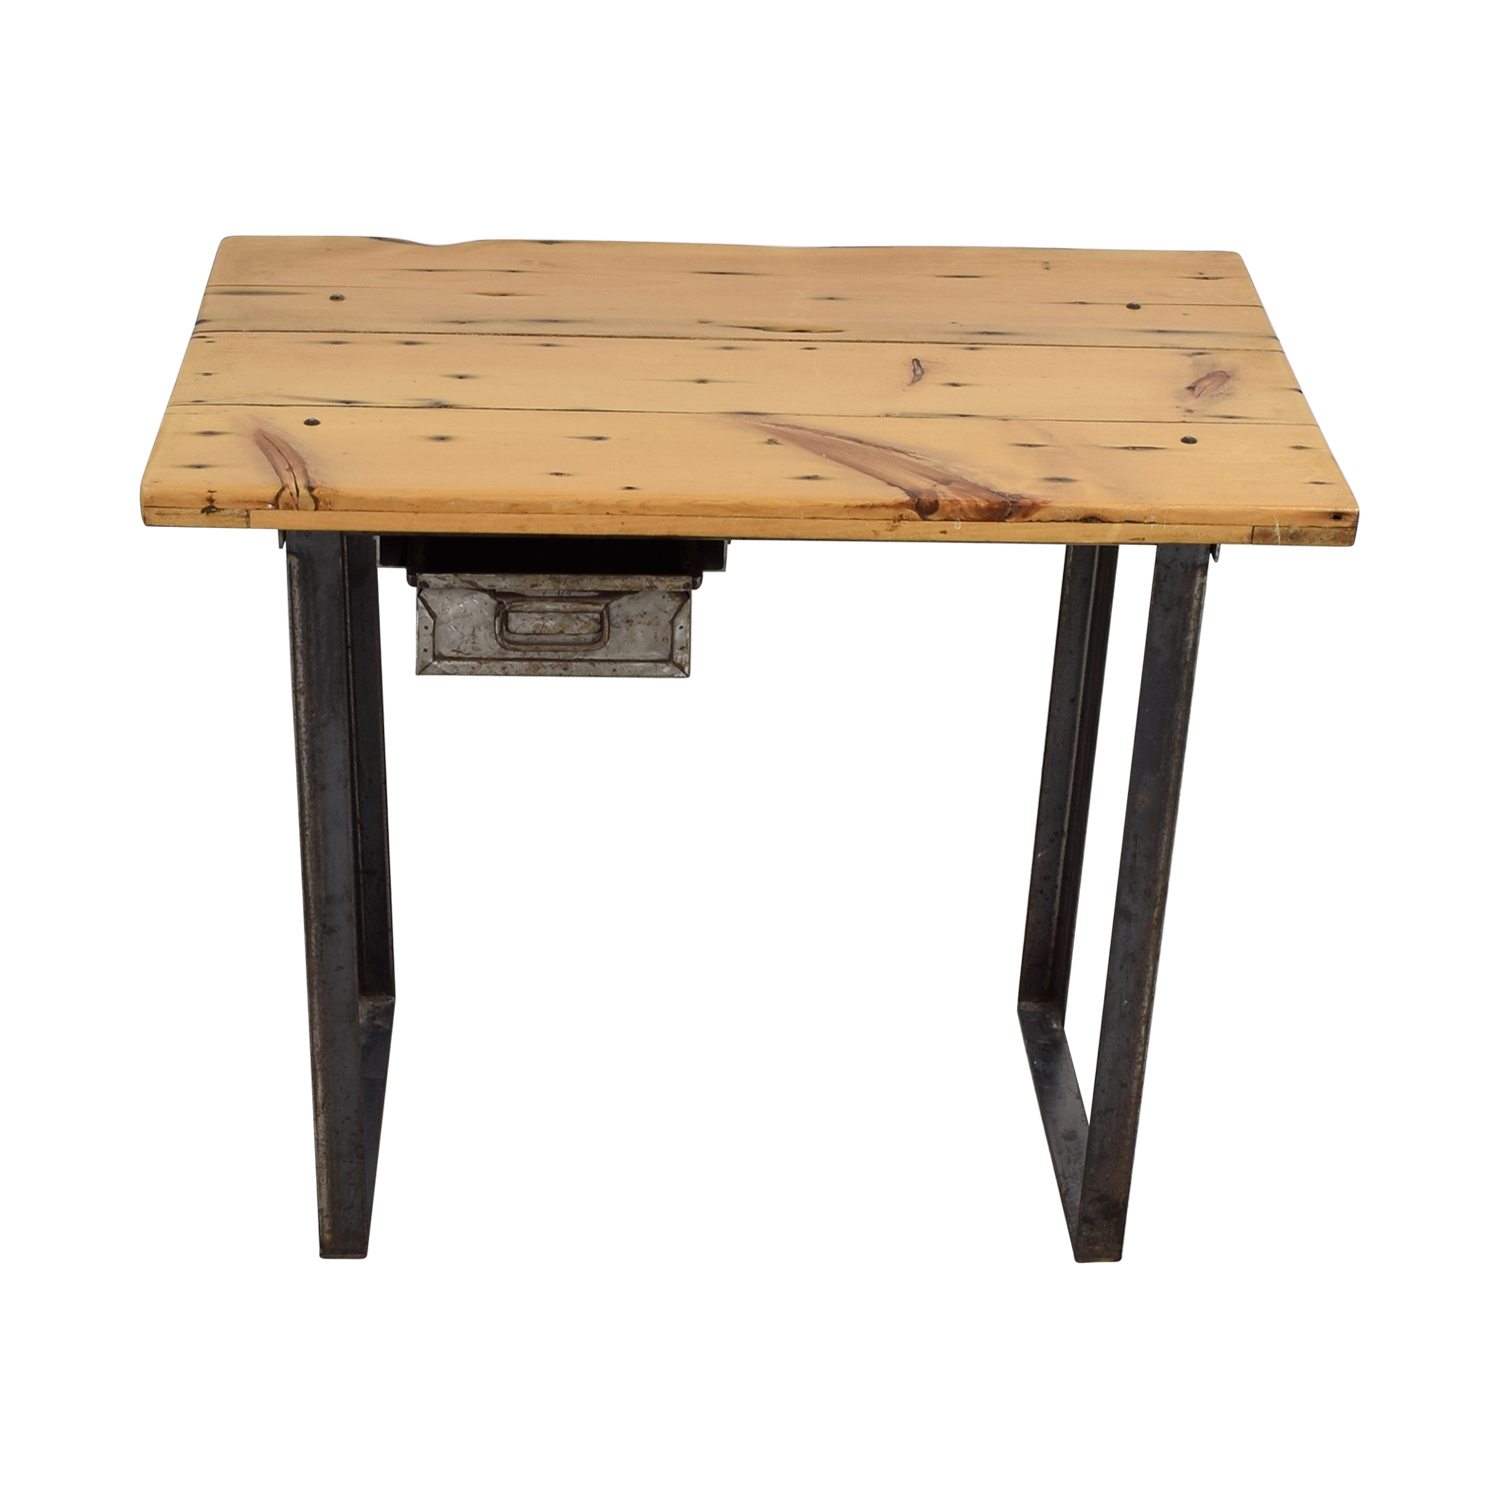 Rustic Wood Table with Metal Drawer / Utility Tables